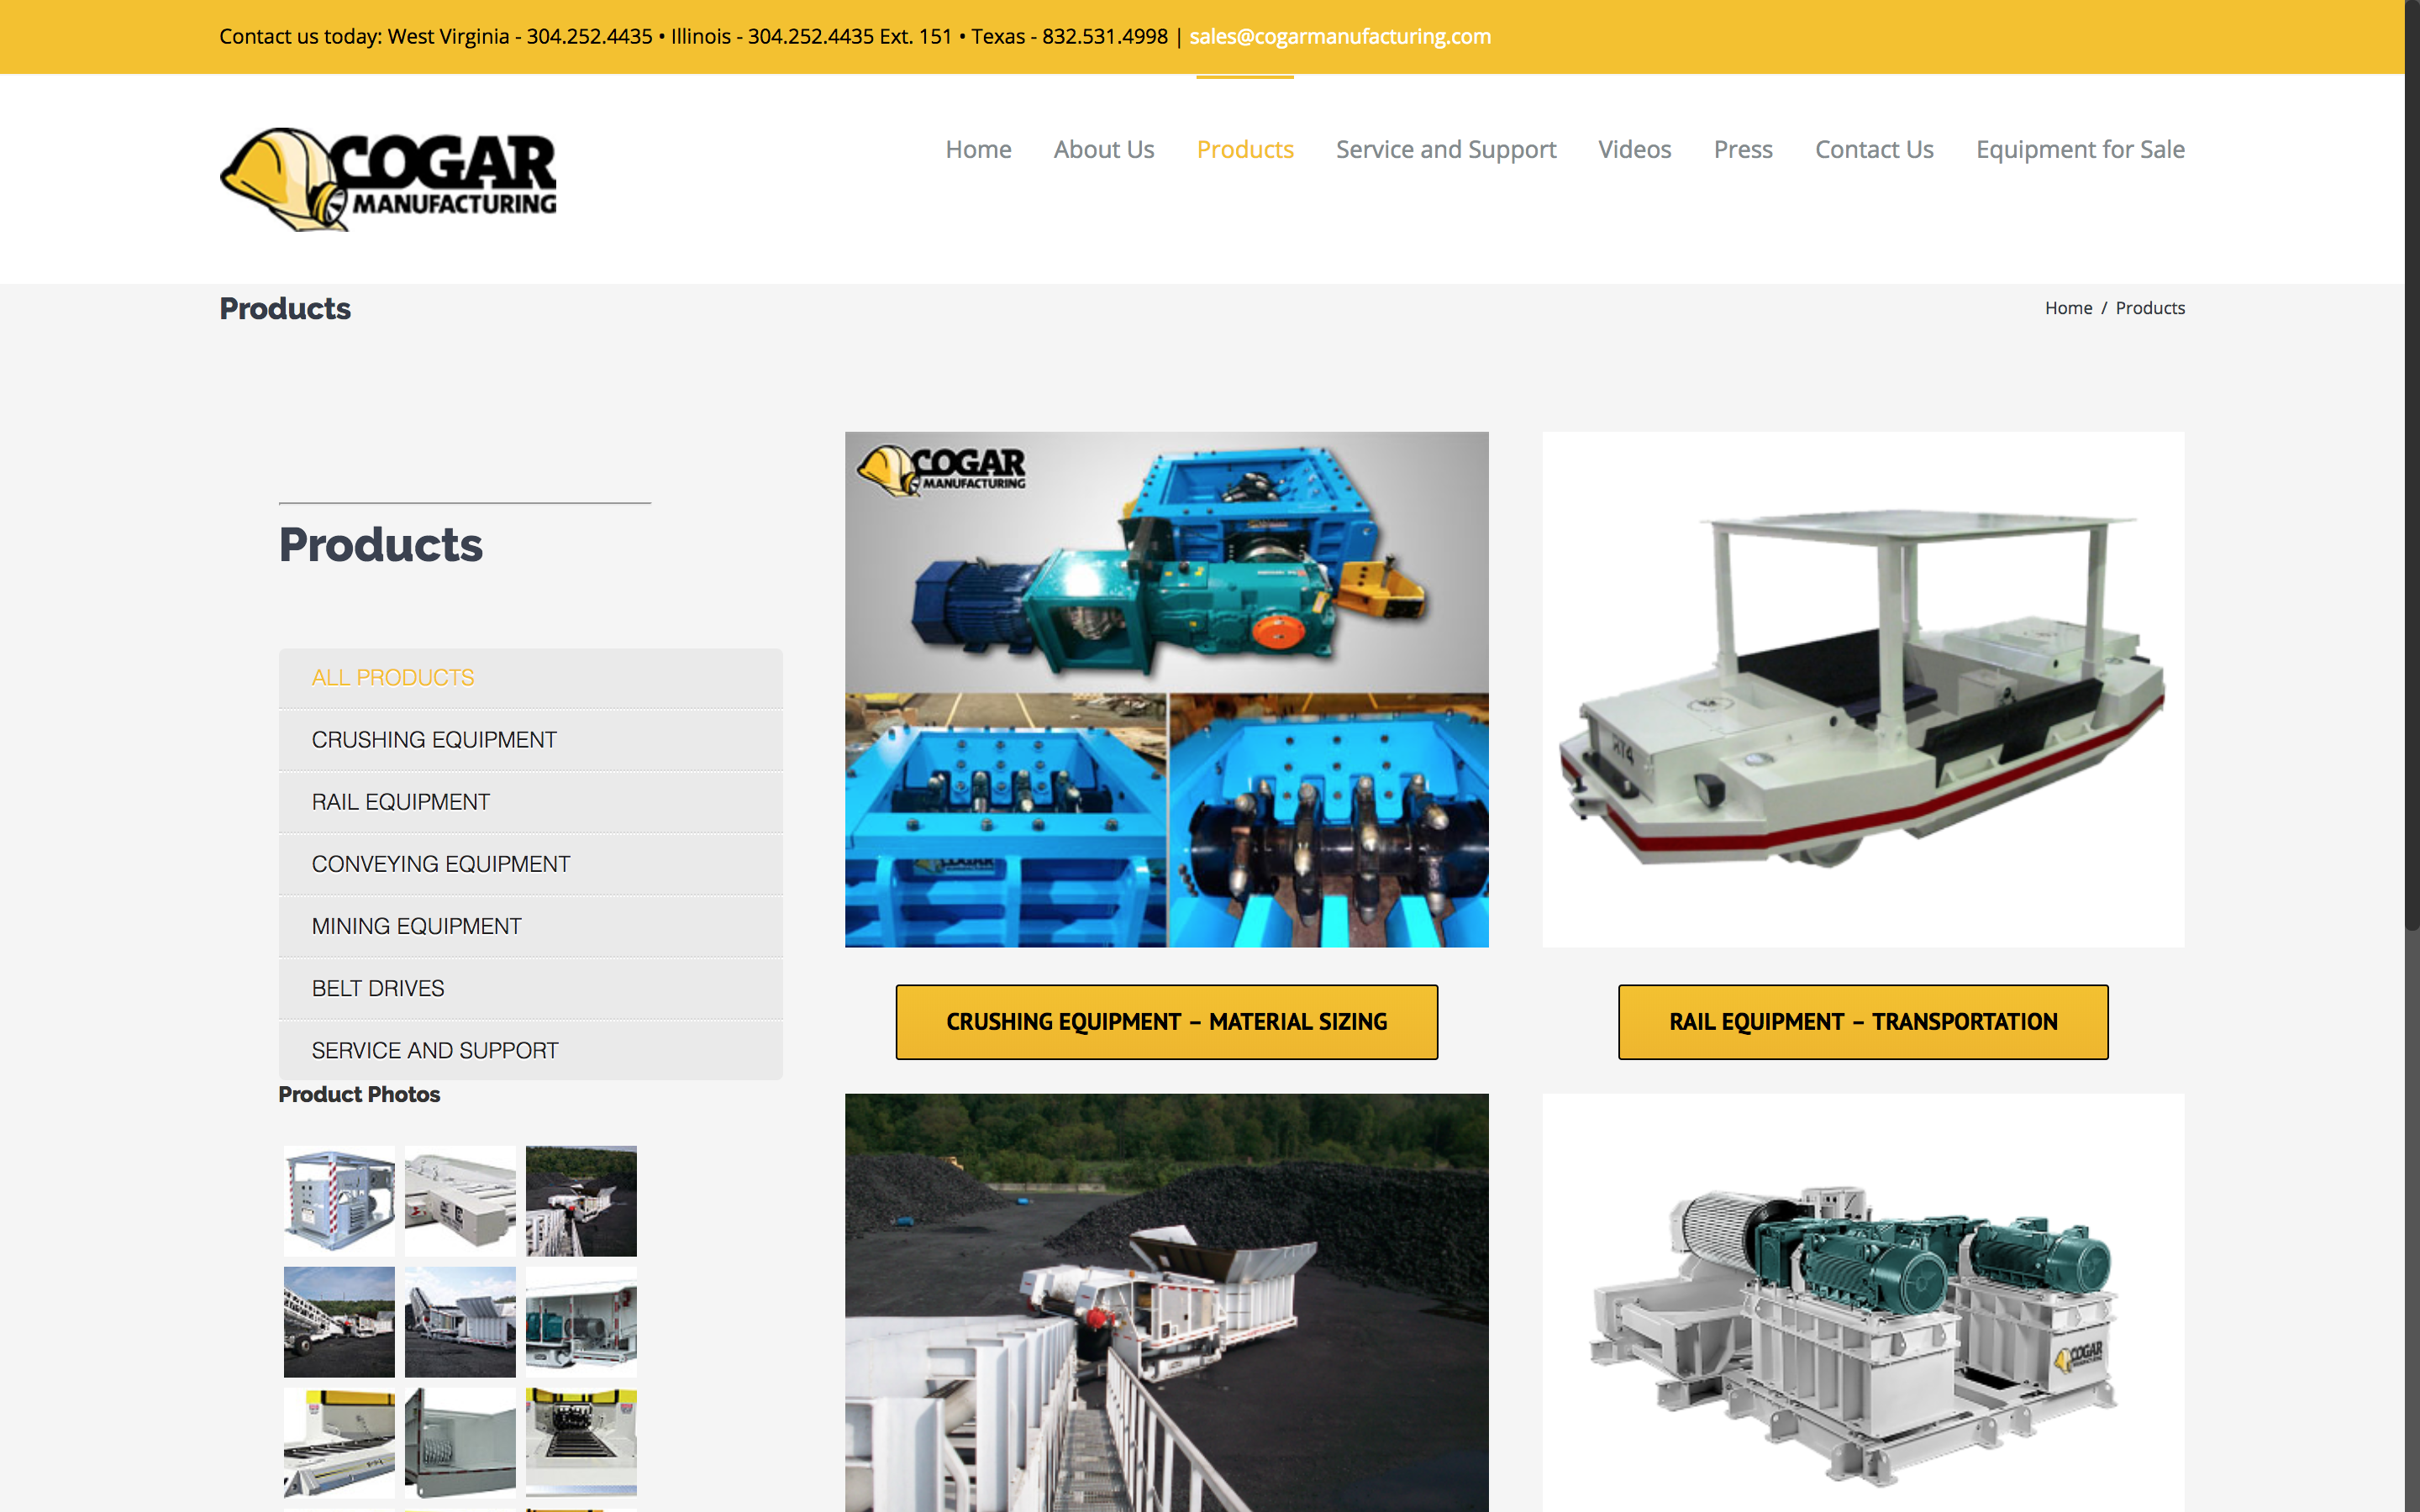 Cogar Manufacturing Products Page West Virginia Web Design by Cucumber and Company Best websites in WV